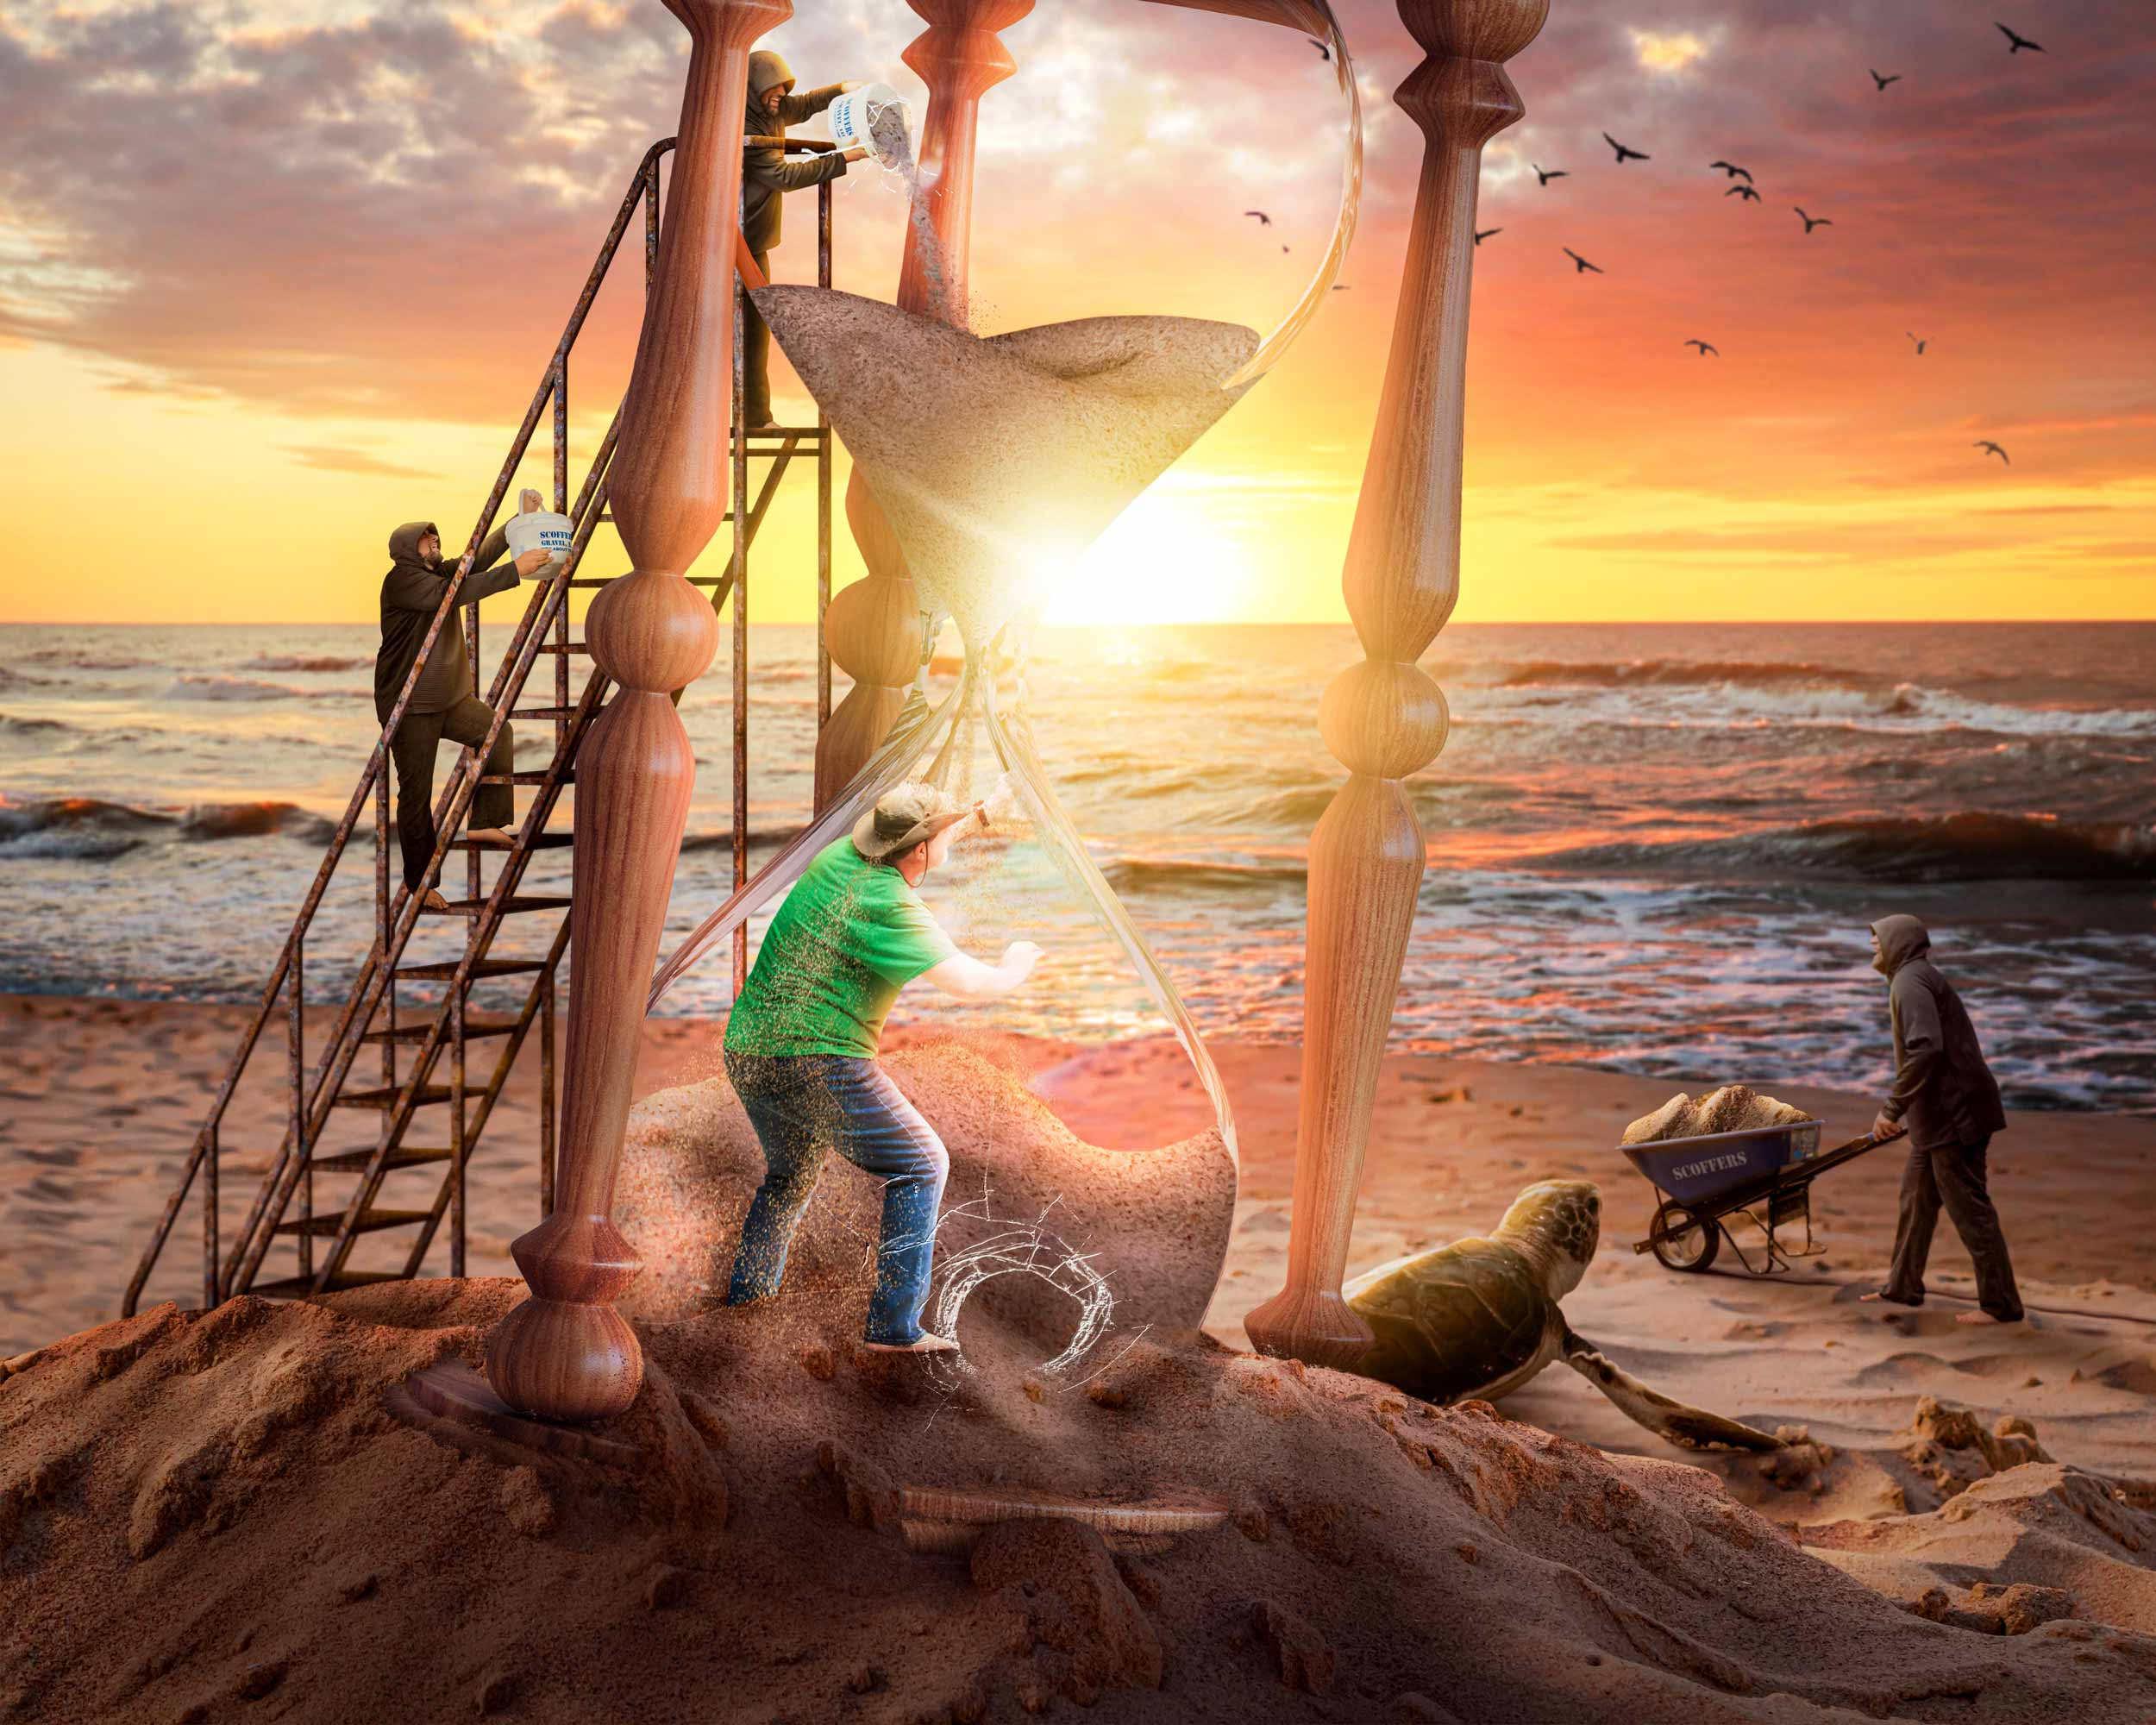 A man is trapped in an hourglass, on the beach as minions keep pouring more sand into the top of the hourglass. However, the man is focused on the sunrise on the horizon.